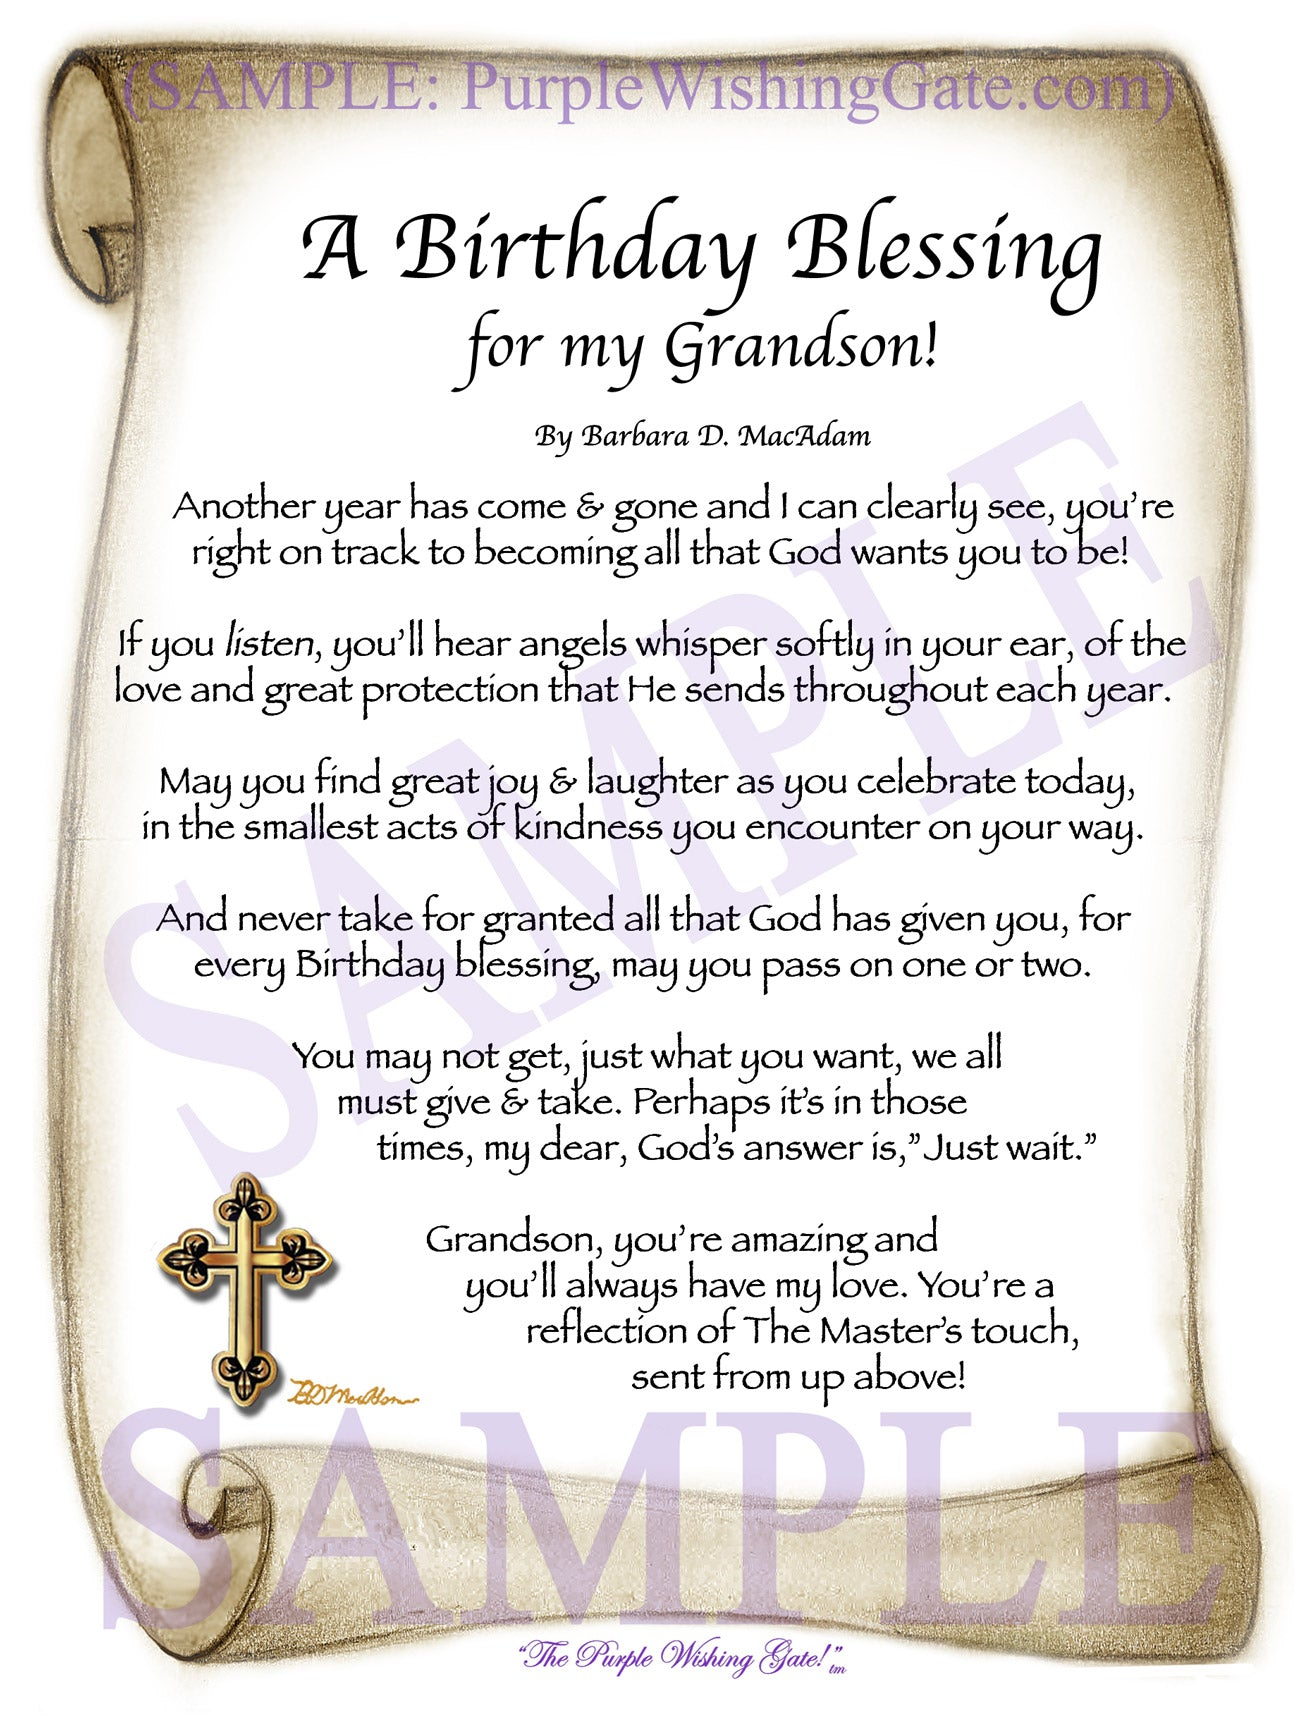 a birthday blessing for my grandson birthday gift purplewishinggatecom